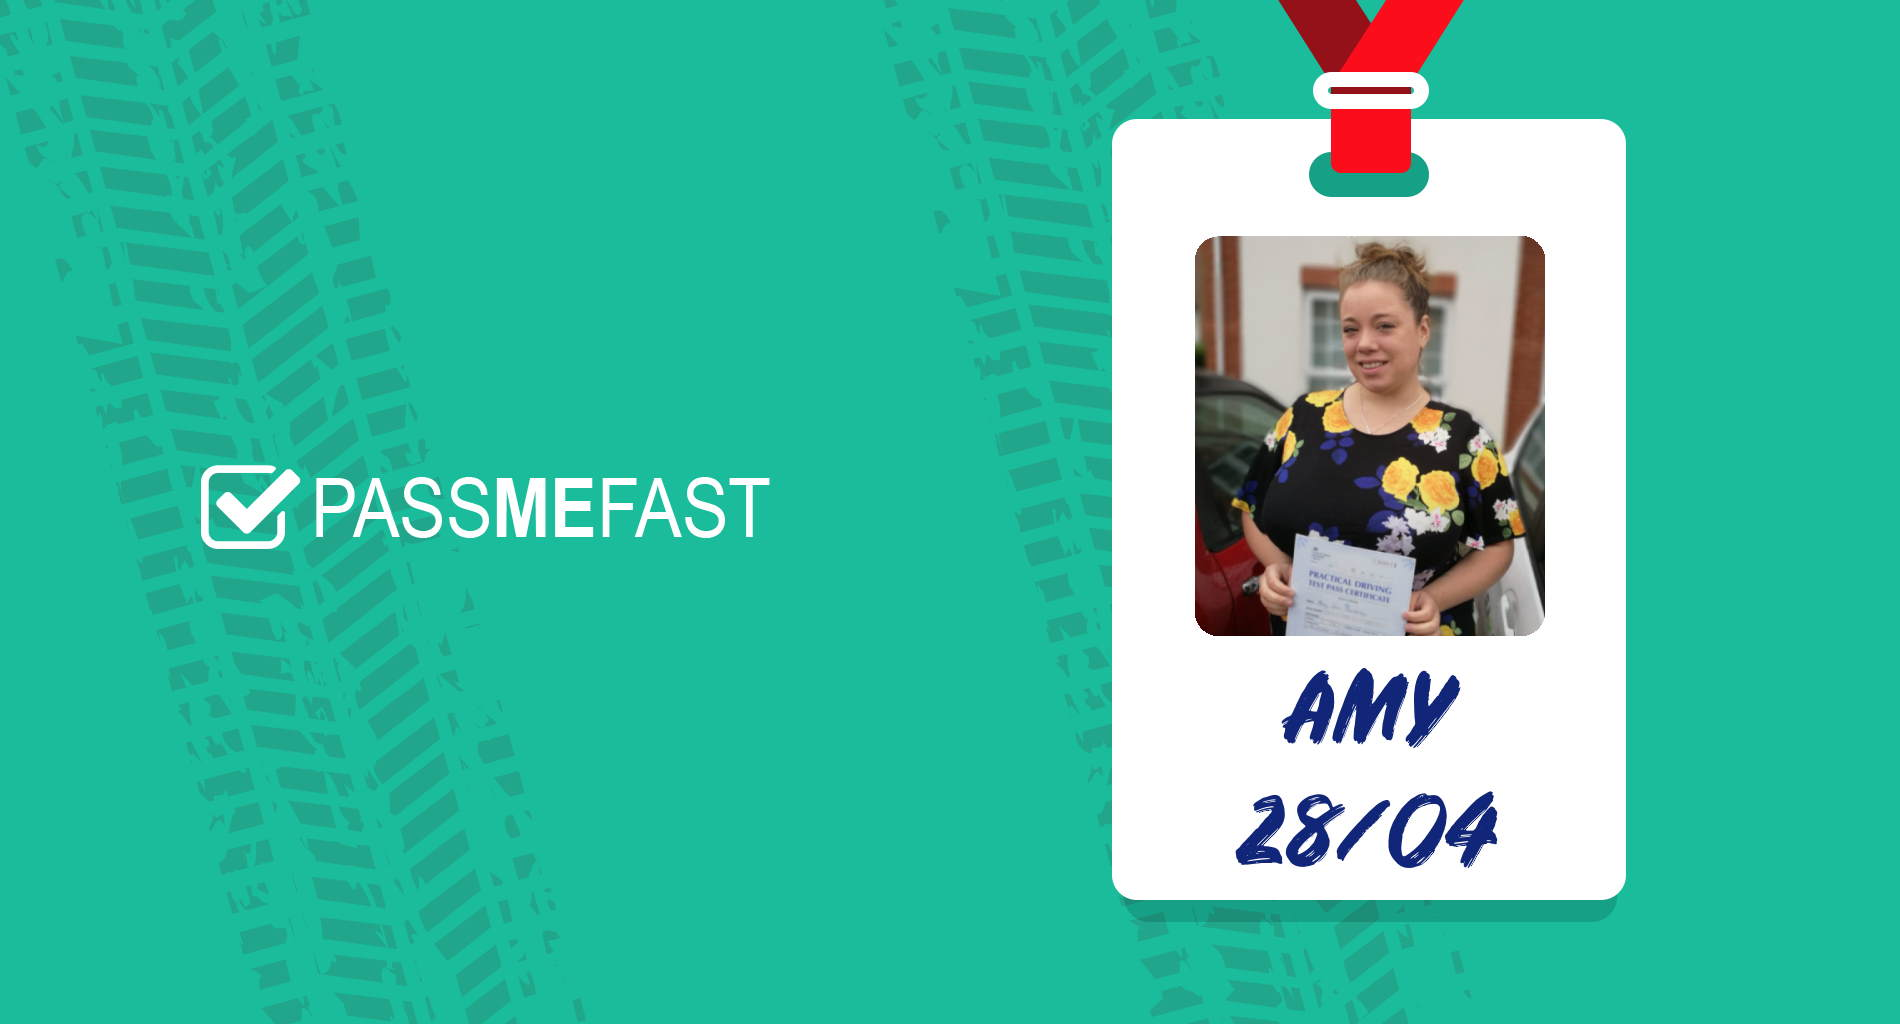 Pass photo of PMF student Amy Dora